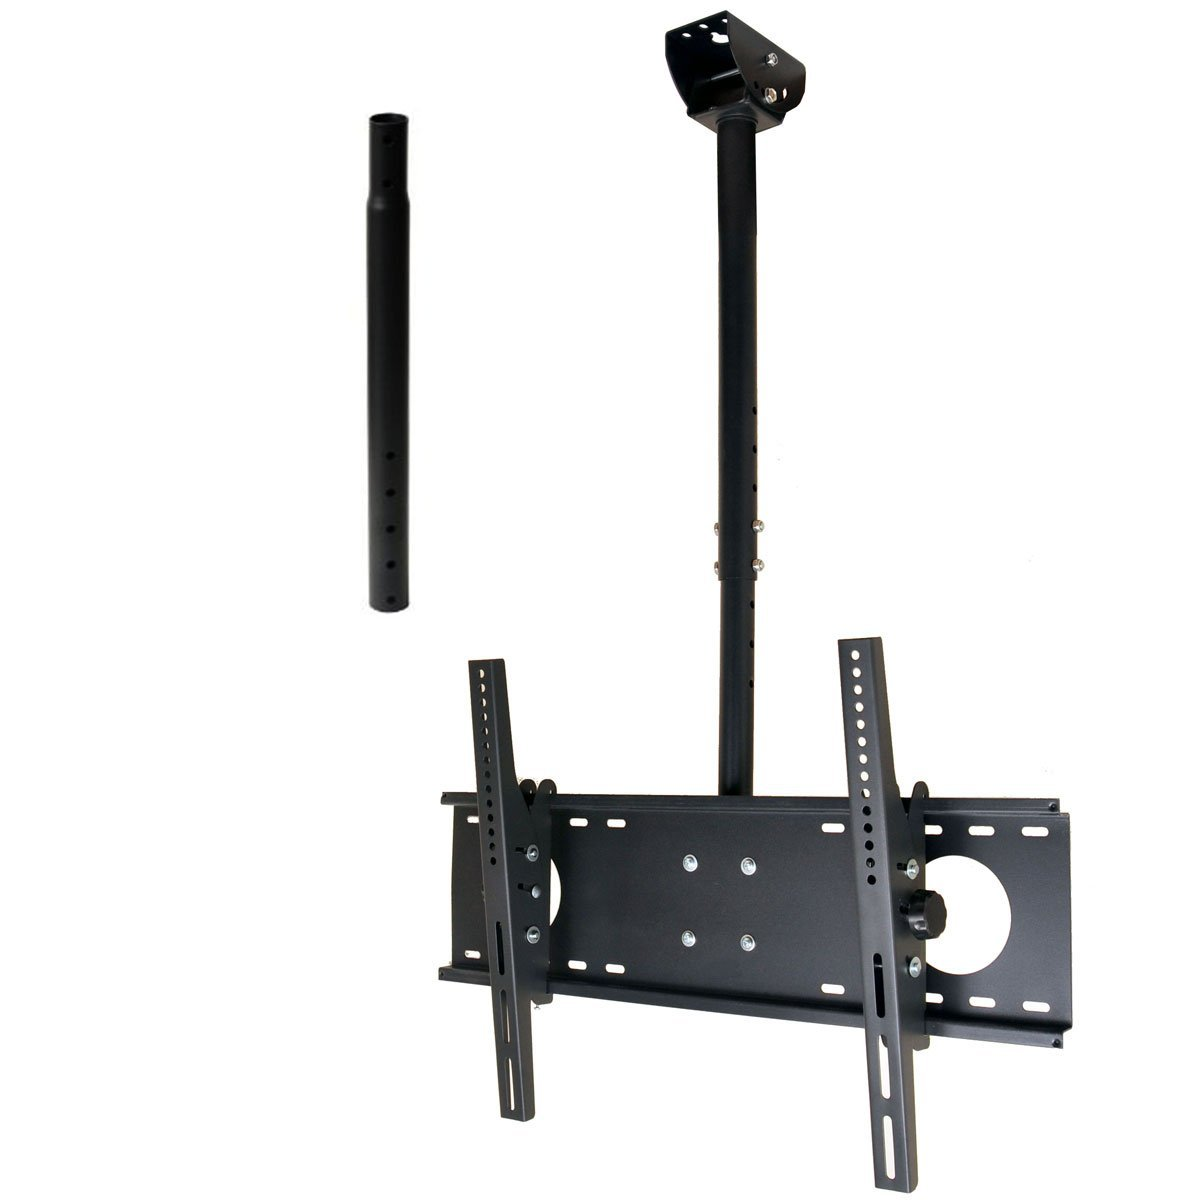 Mpc 53be Ceiling Tv Mount For 32 60 Flat Panel Tvs